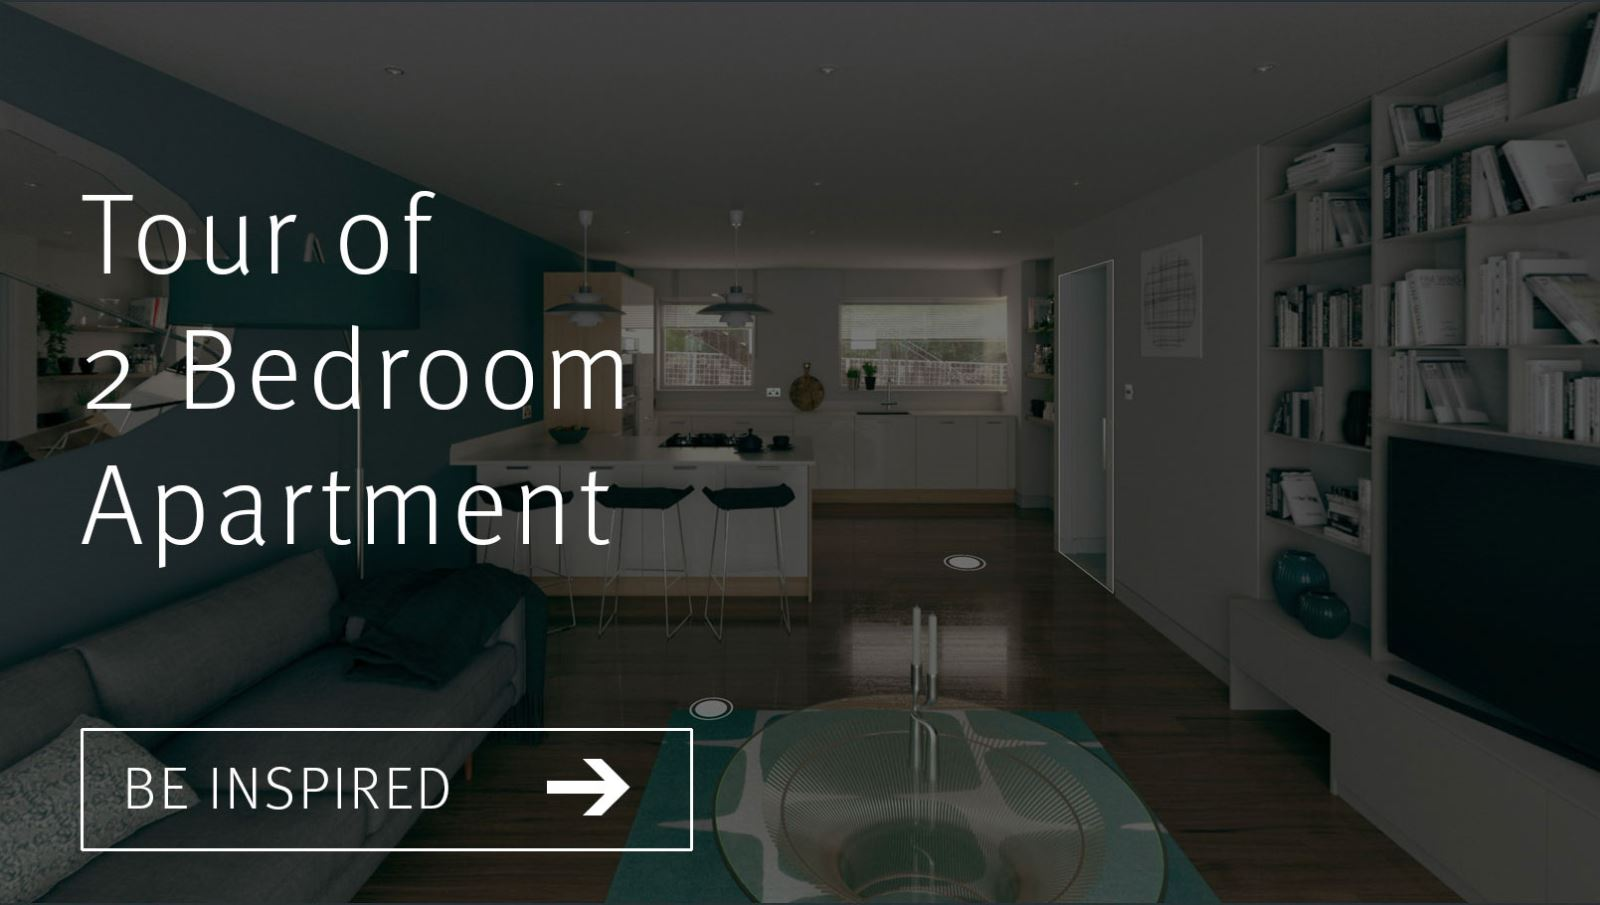 Tour of 2 bedroom apartment